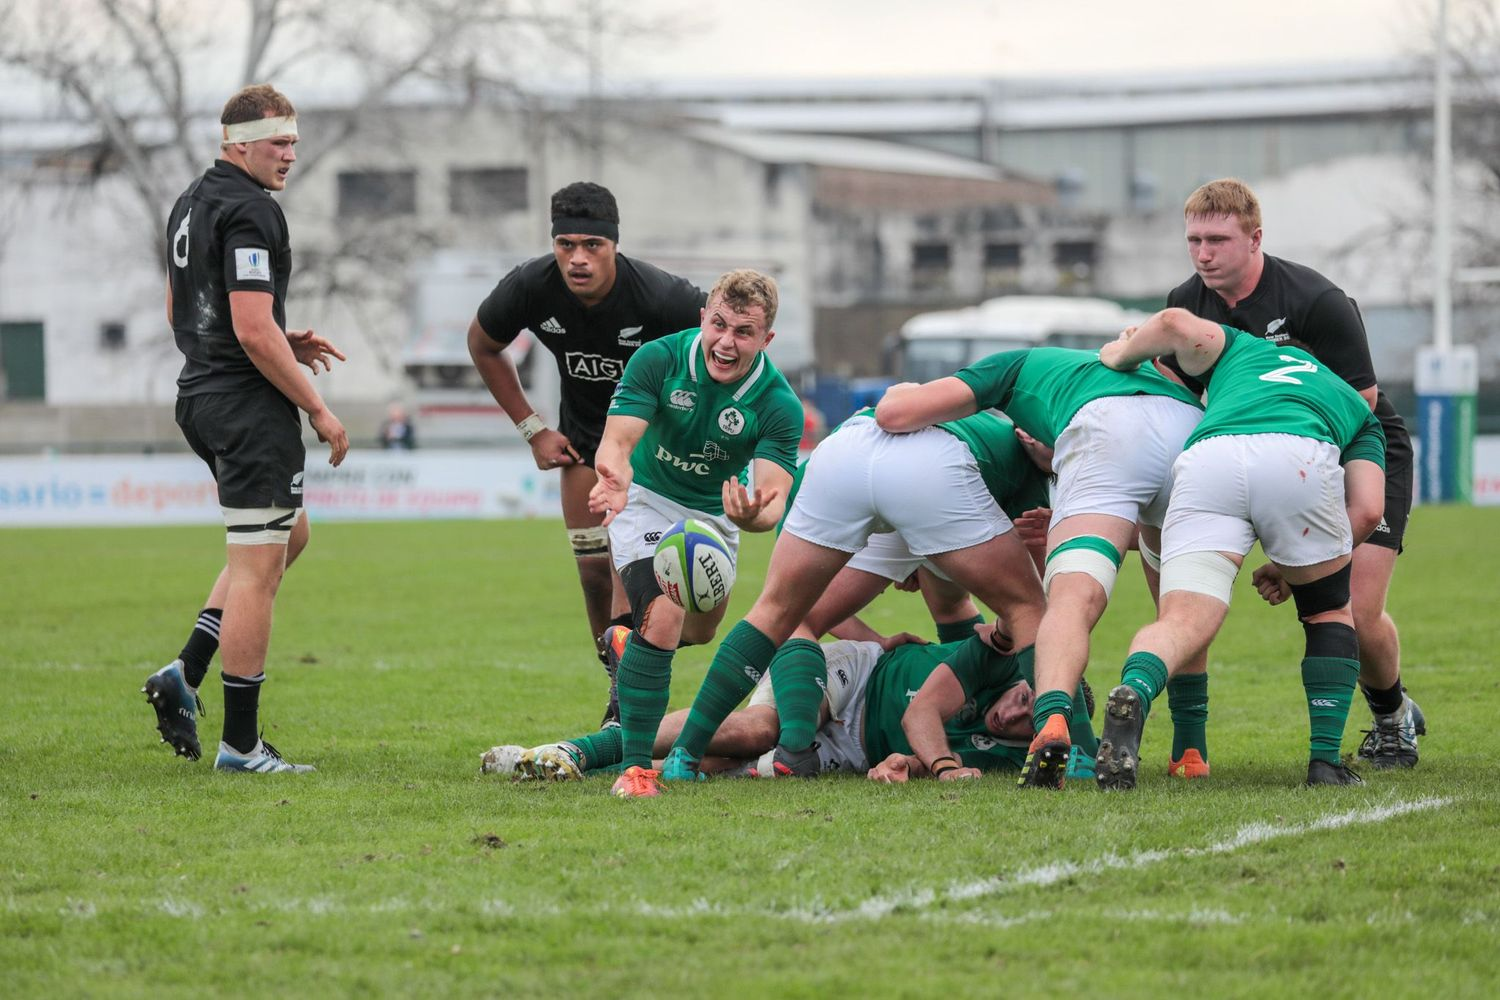 World Rugby U20 Championship 2019: Ireland v New Zealand